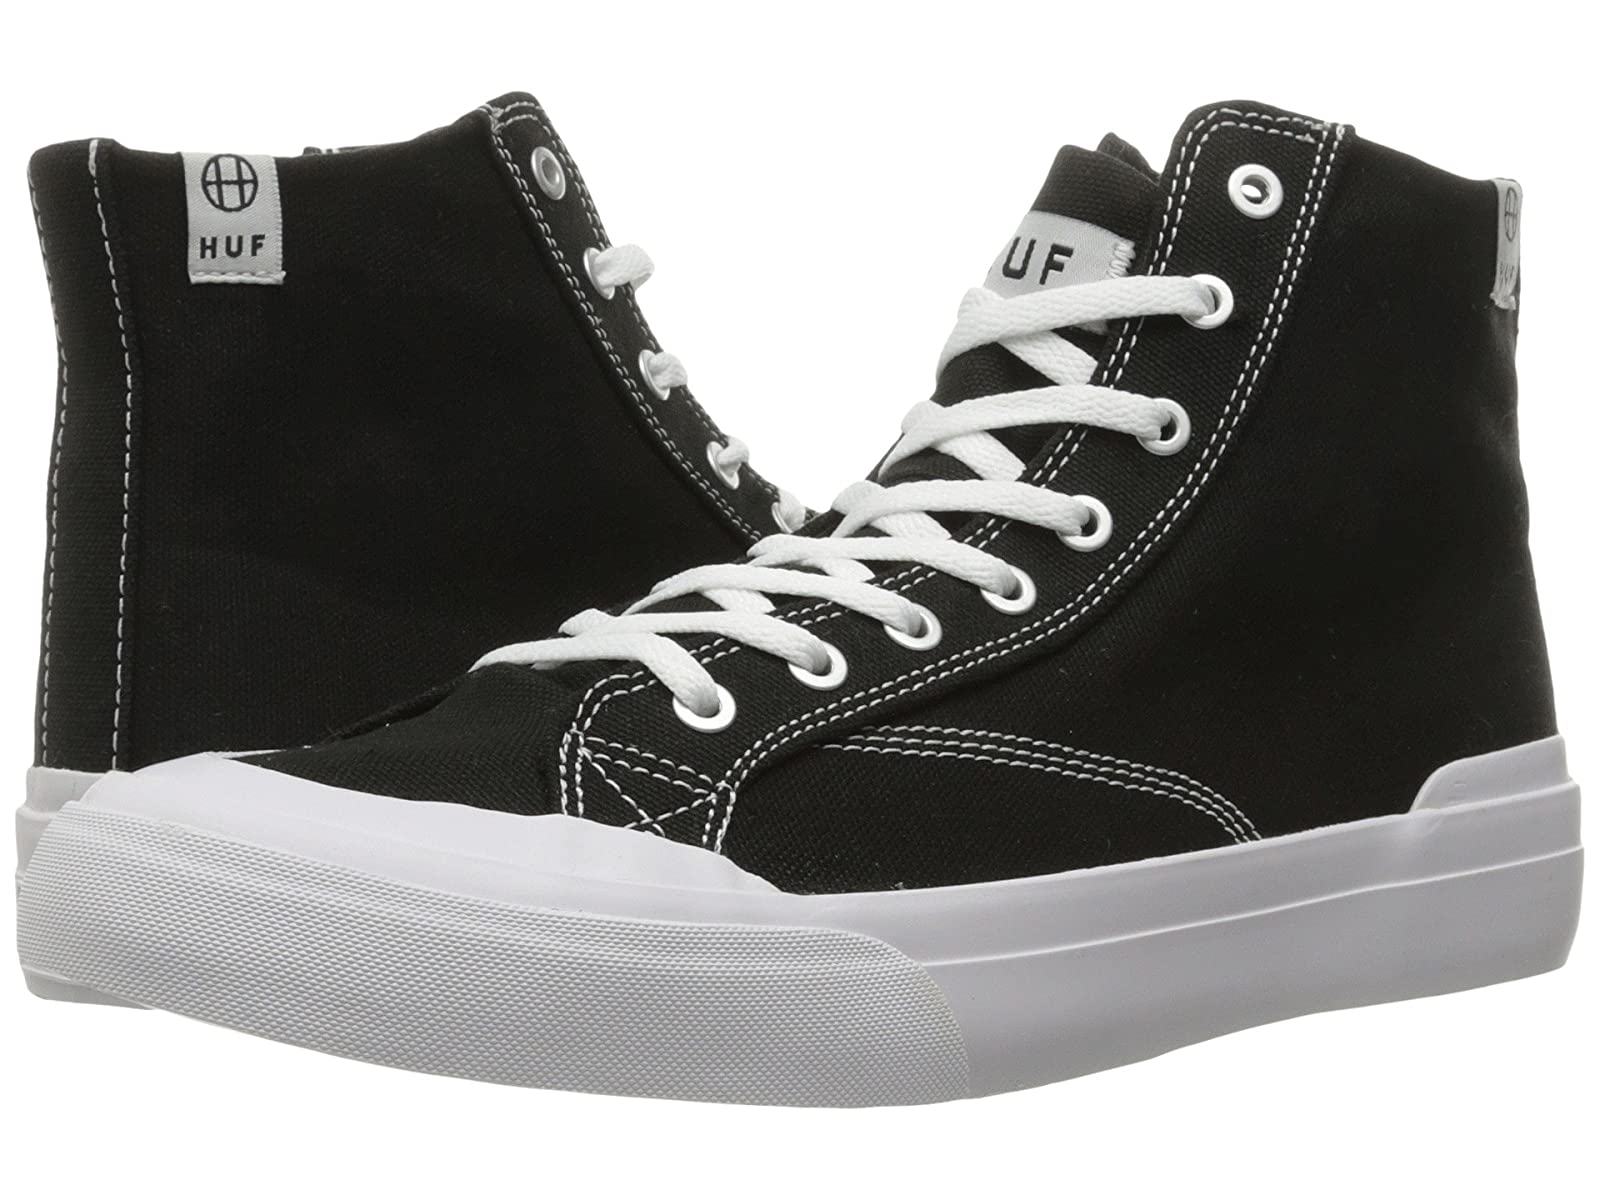 HUF Classic Hi Ess TXAtmospheric grades have affordable shoes